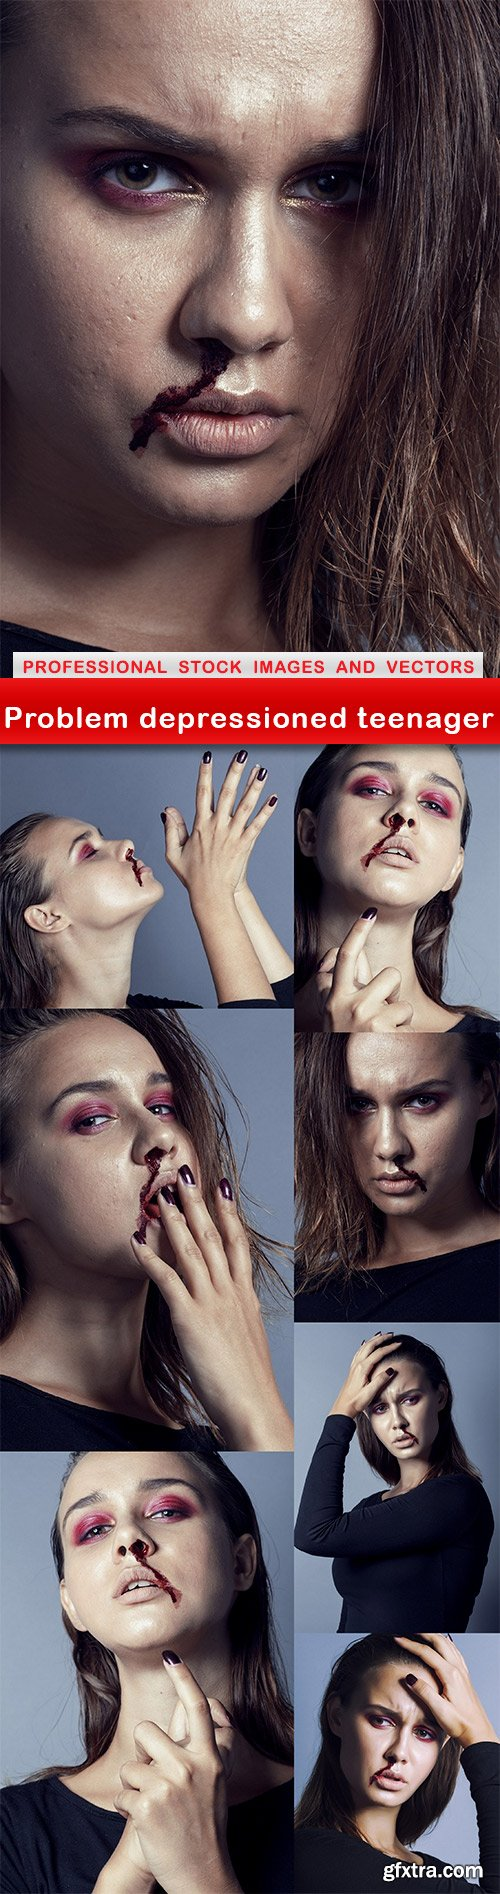 Problem depressioned teenager - 8 UHQ JPEG